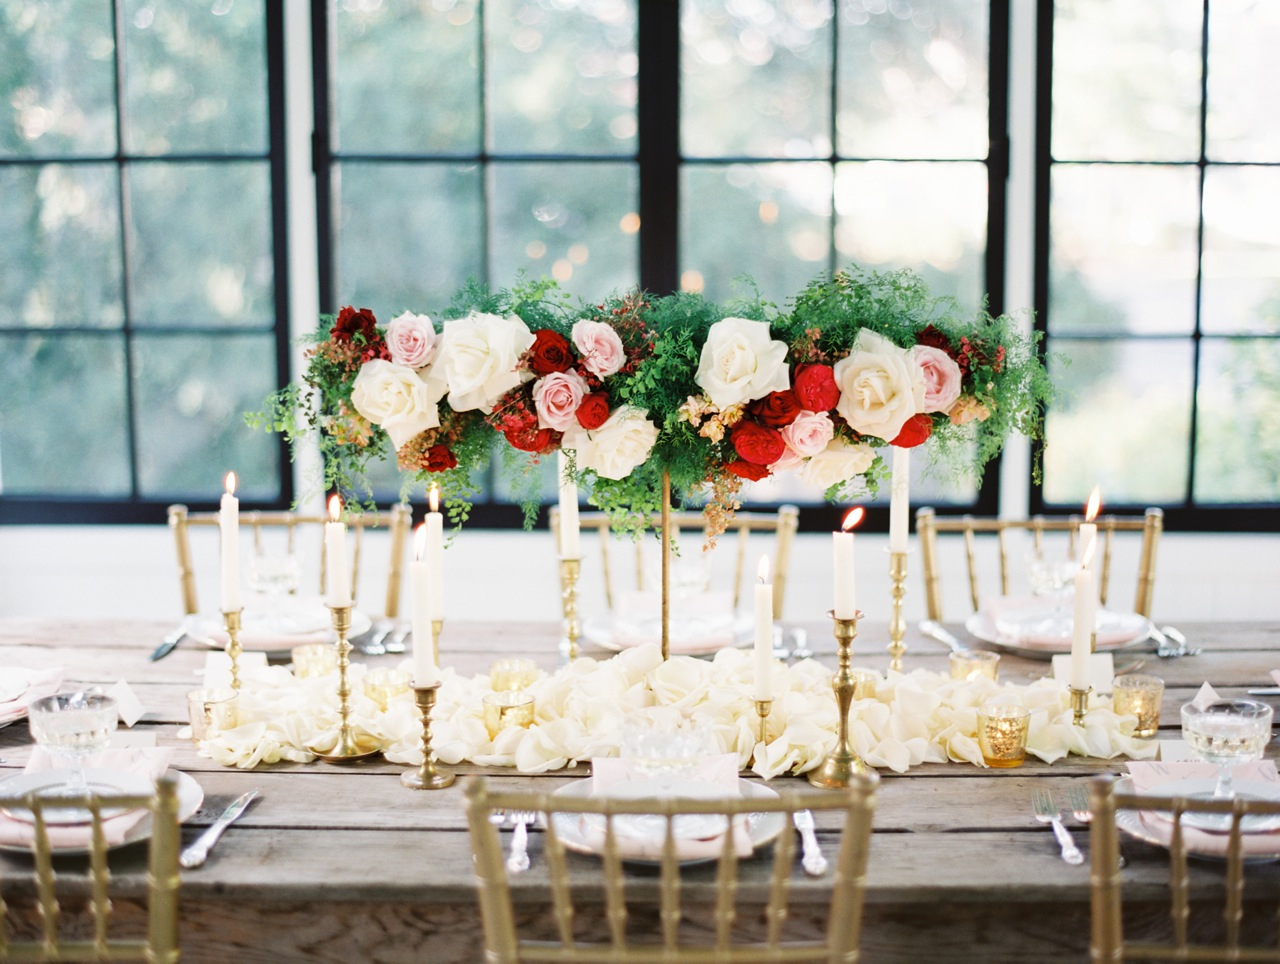 West Coast Decorating Style Classic Florals And Draped Deflexus Floated Over A Tabletop Of